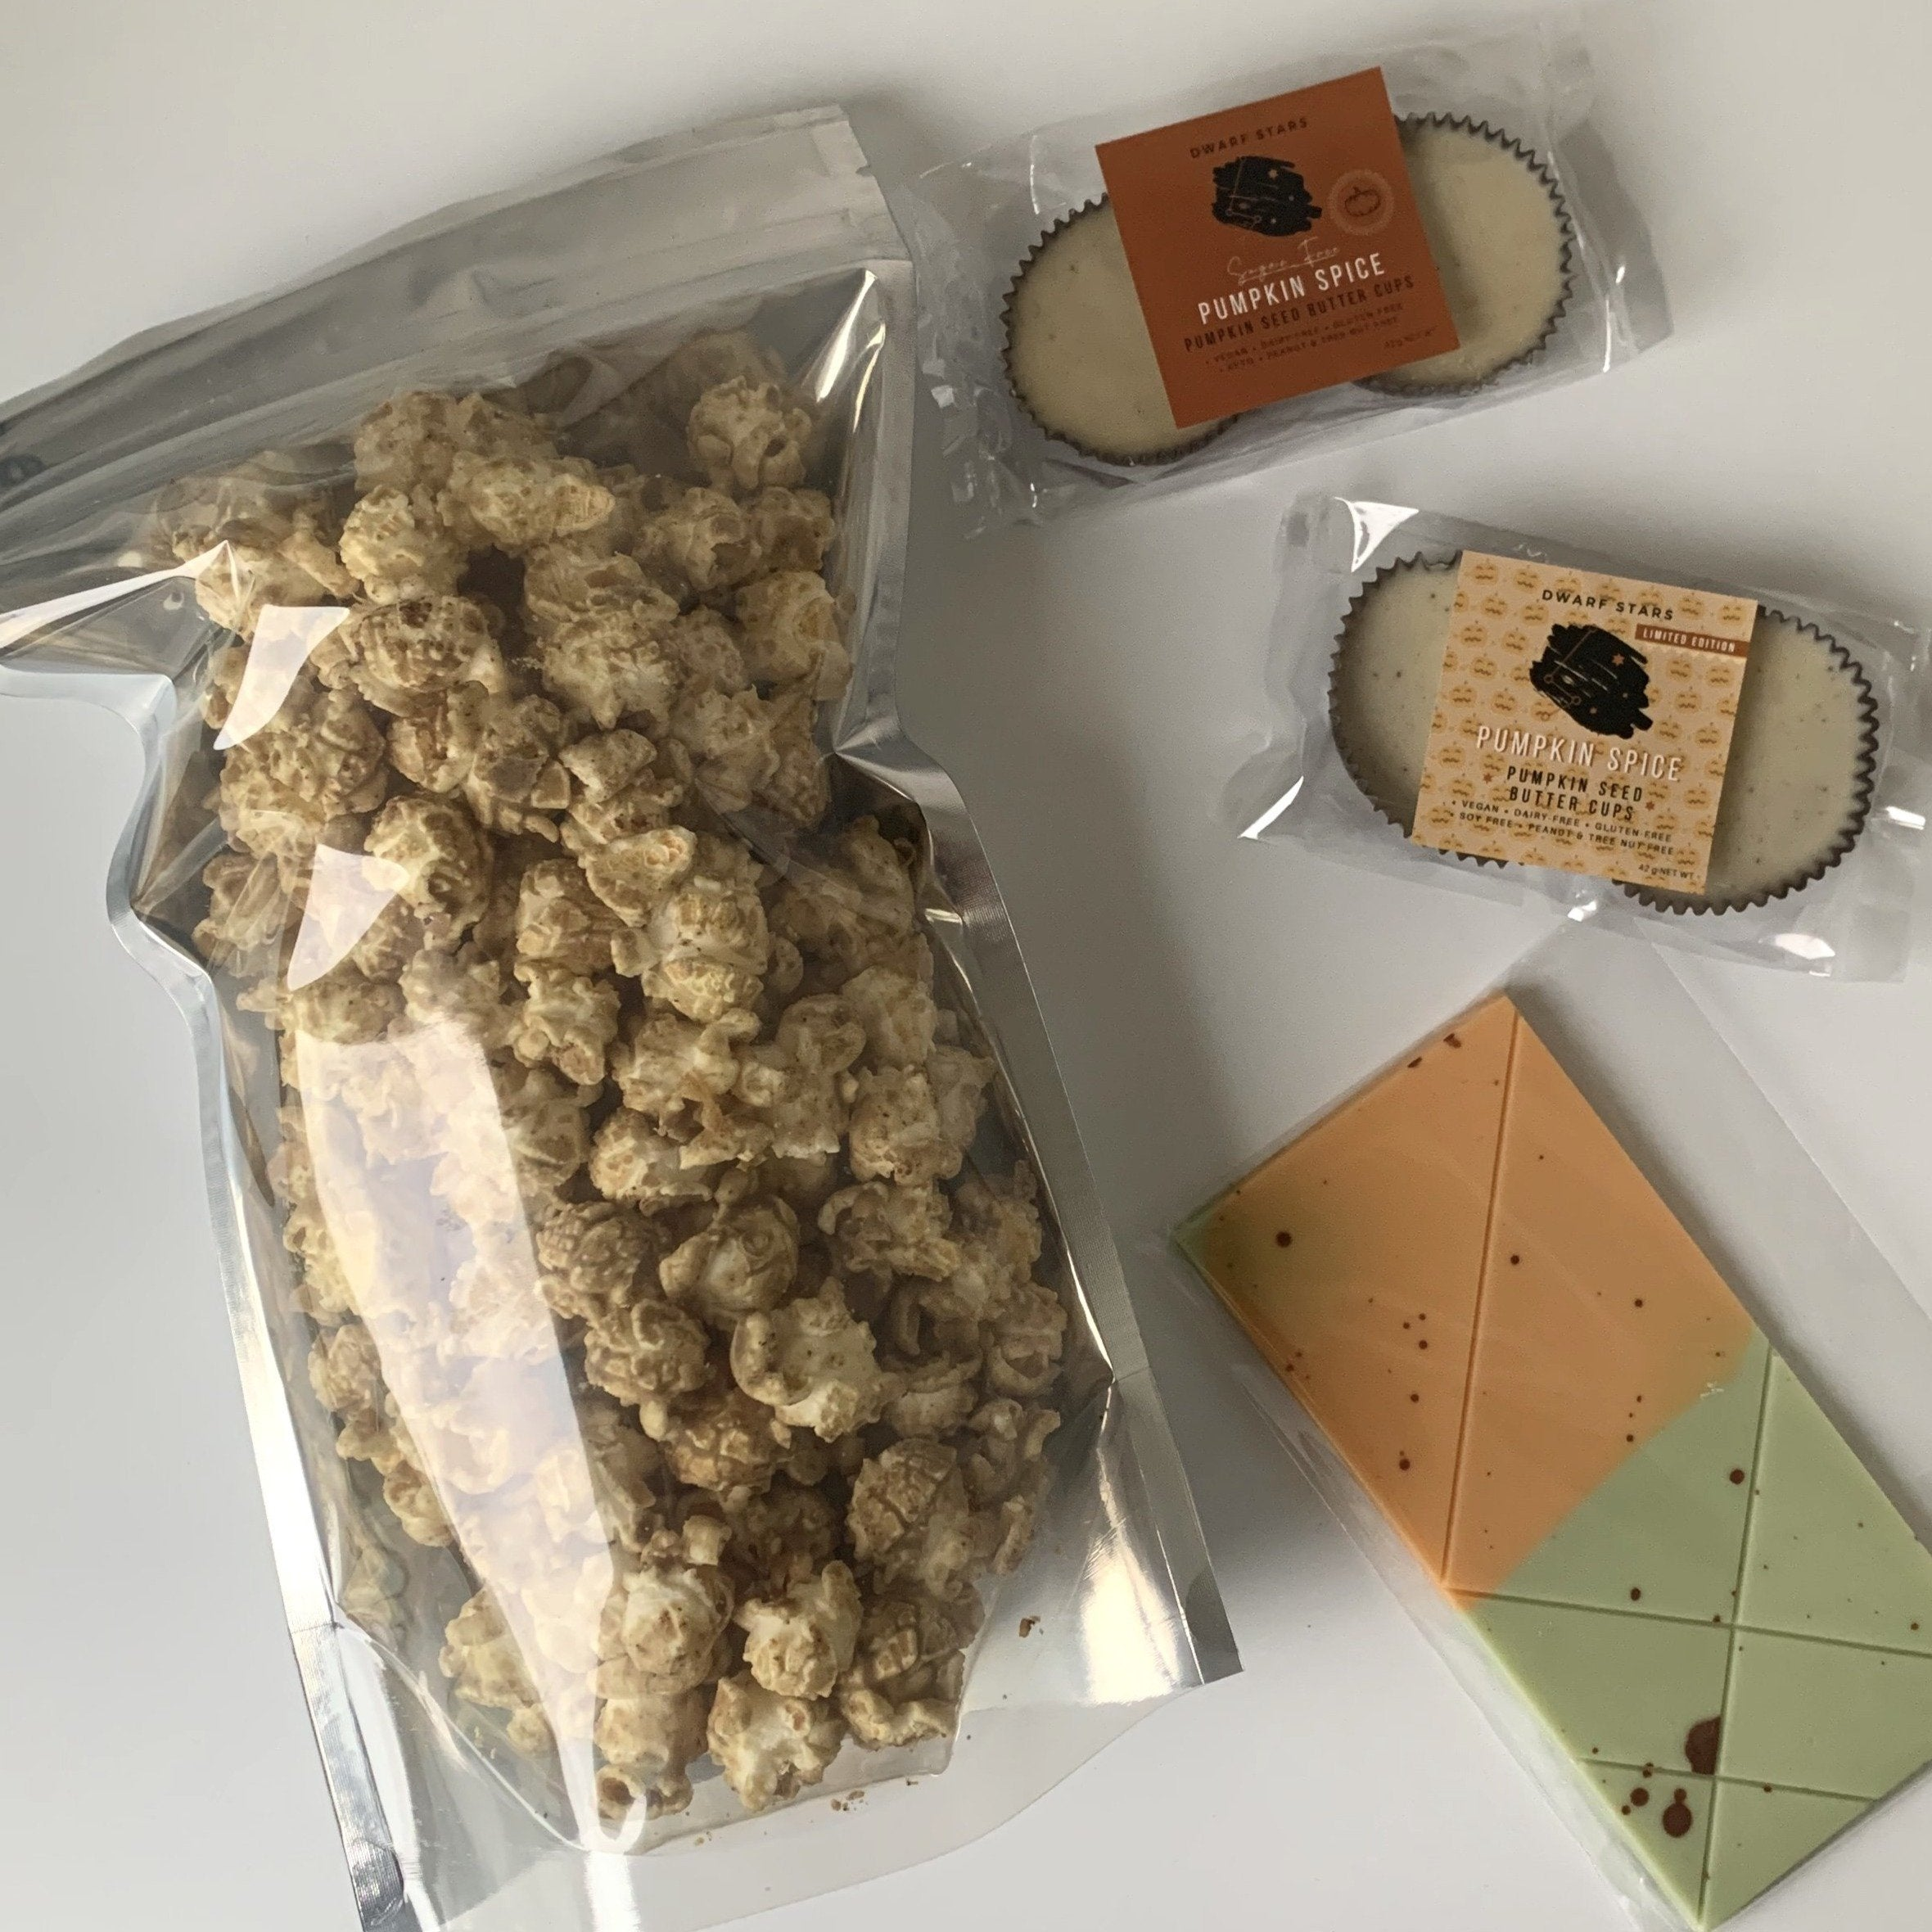 Pumpkin Spice Vegan White Chocolate Popcorn, cups and vegan chocolate bar